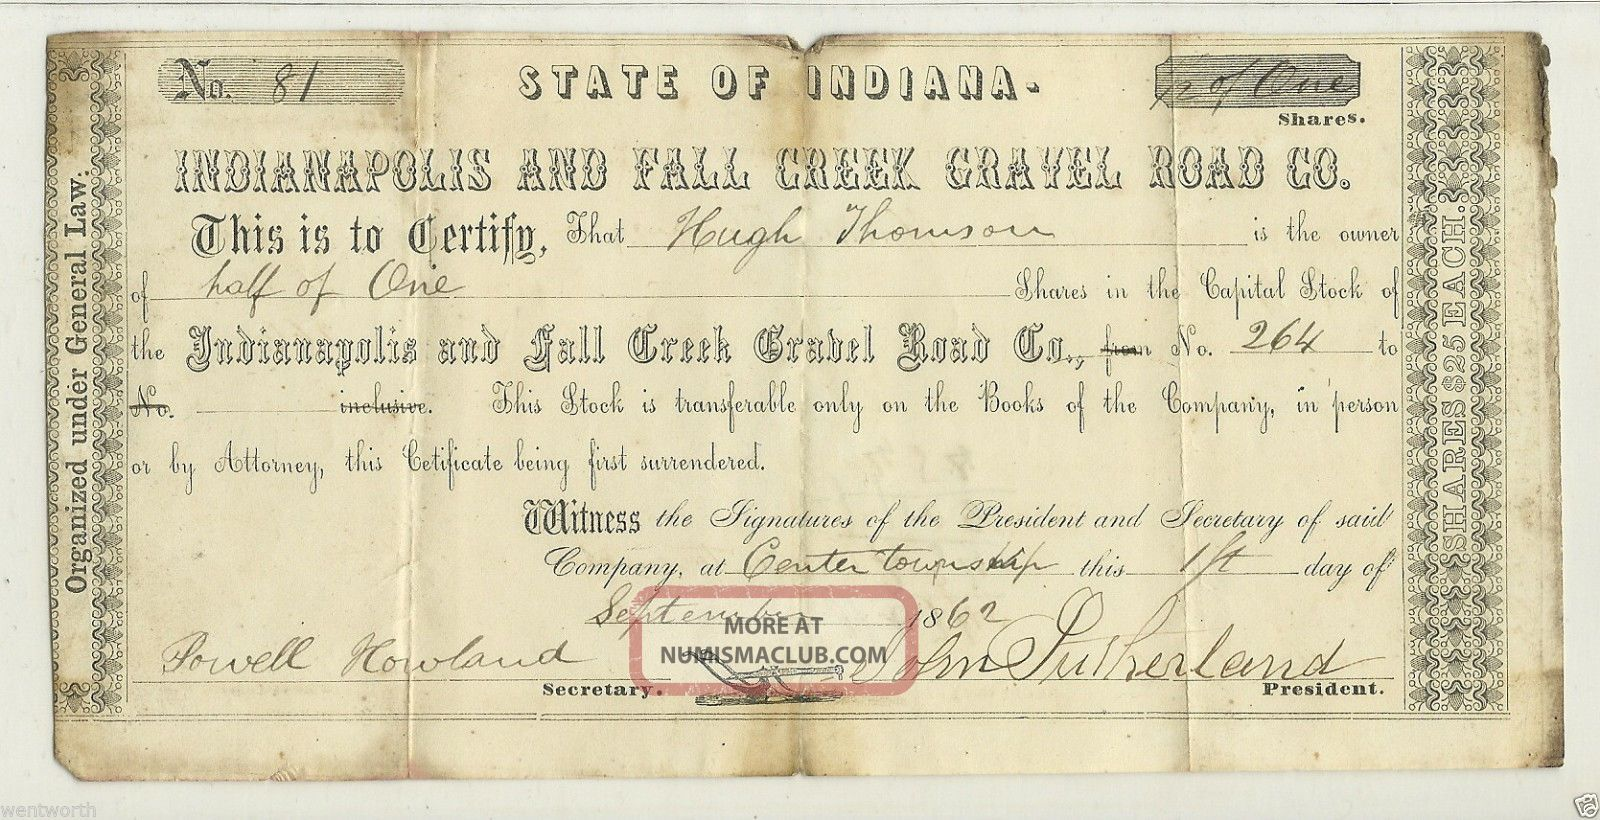 1862 Stock Certificate For Indianapolis & Fall Creek Gravel Road Co. Transportation photo